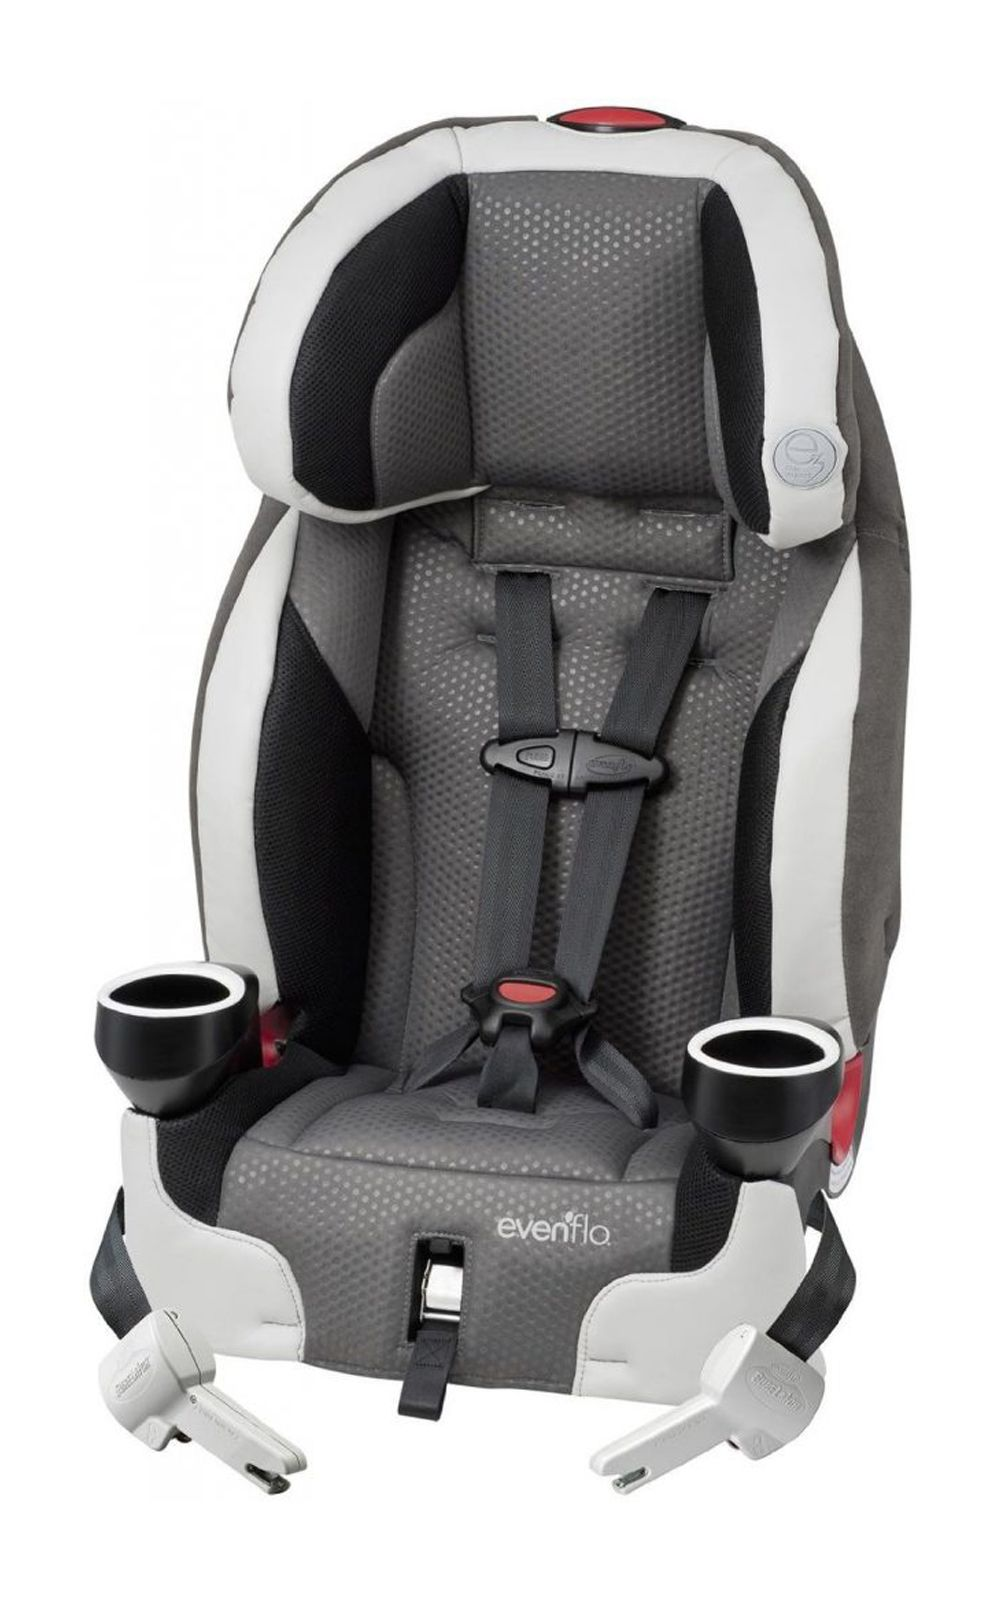 Best Car Seat For 4 Year Old Kids Best Top Ten Ever Best Car Seats Car Seats Baby Car Seats